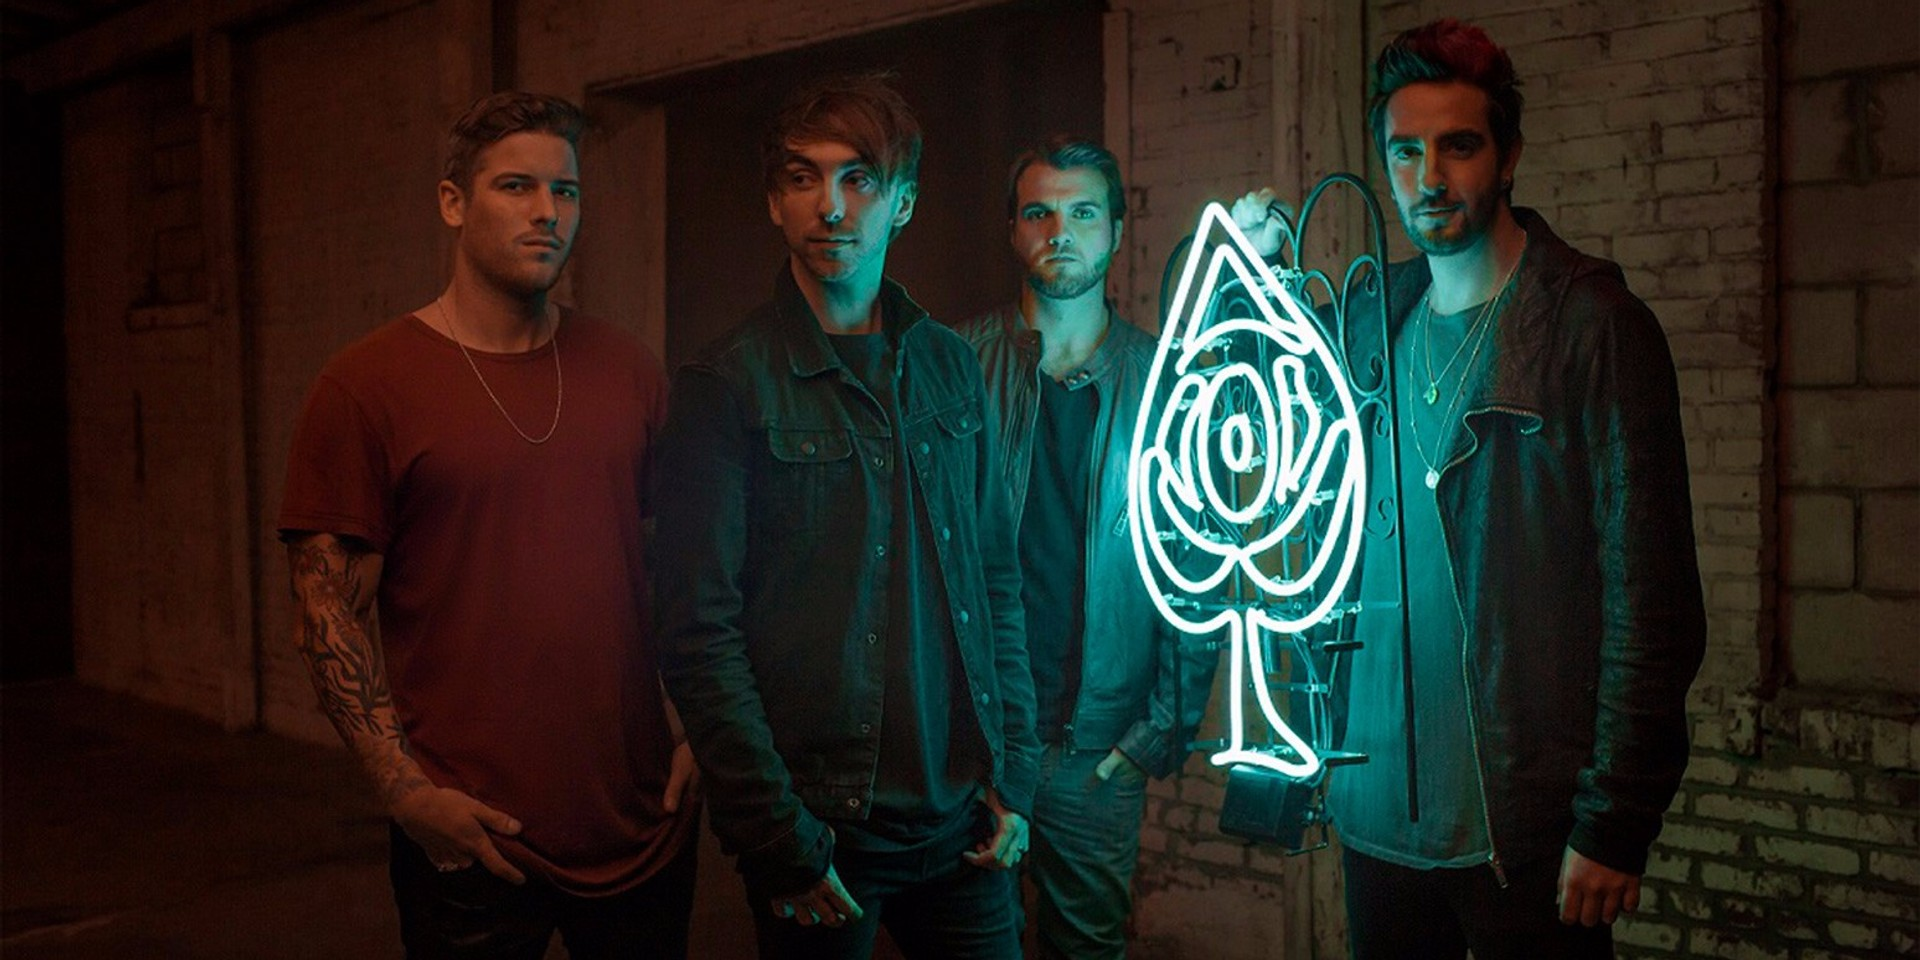 Get a chance to meet-and-greet All Time Low in Manila — contest